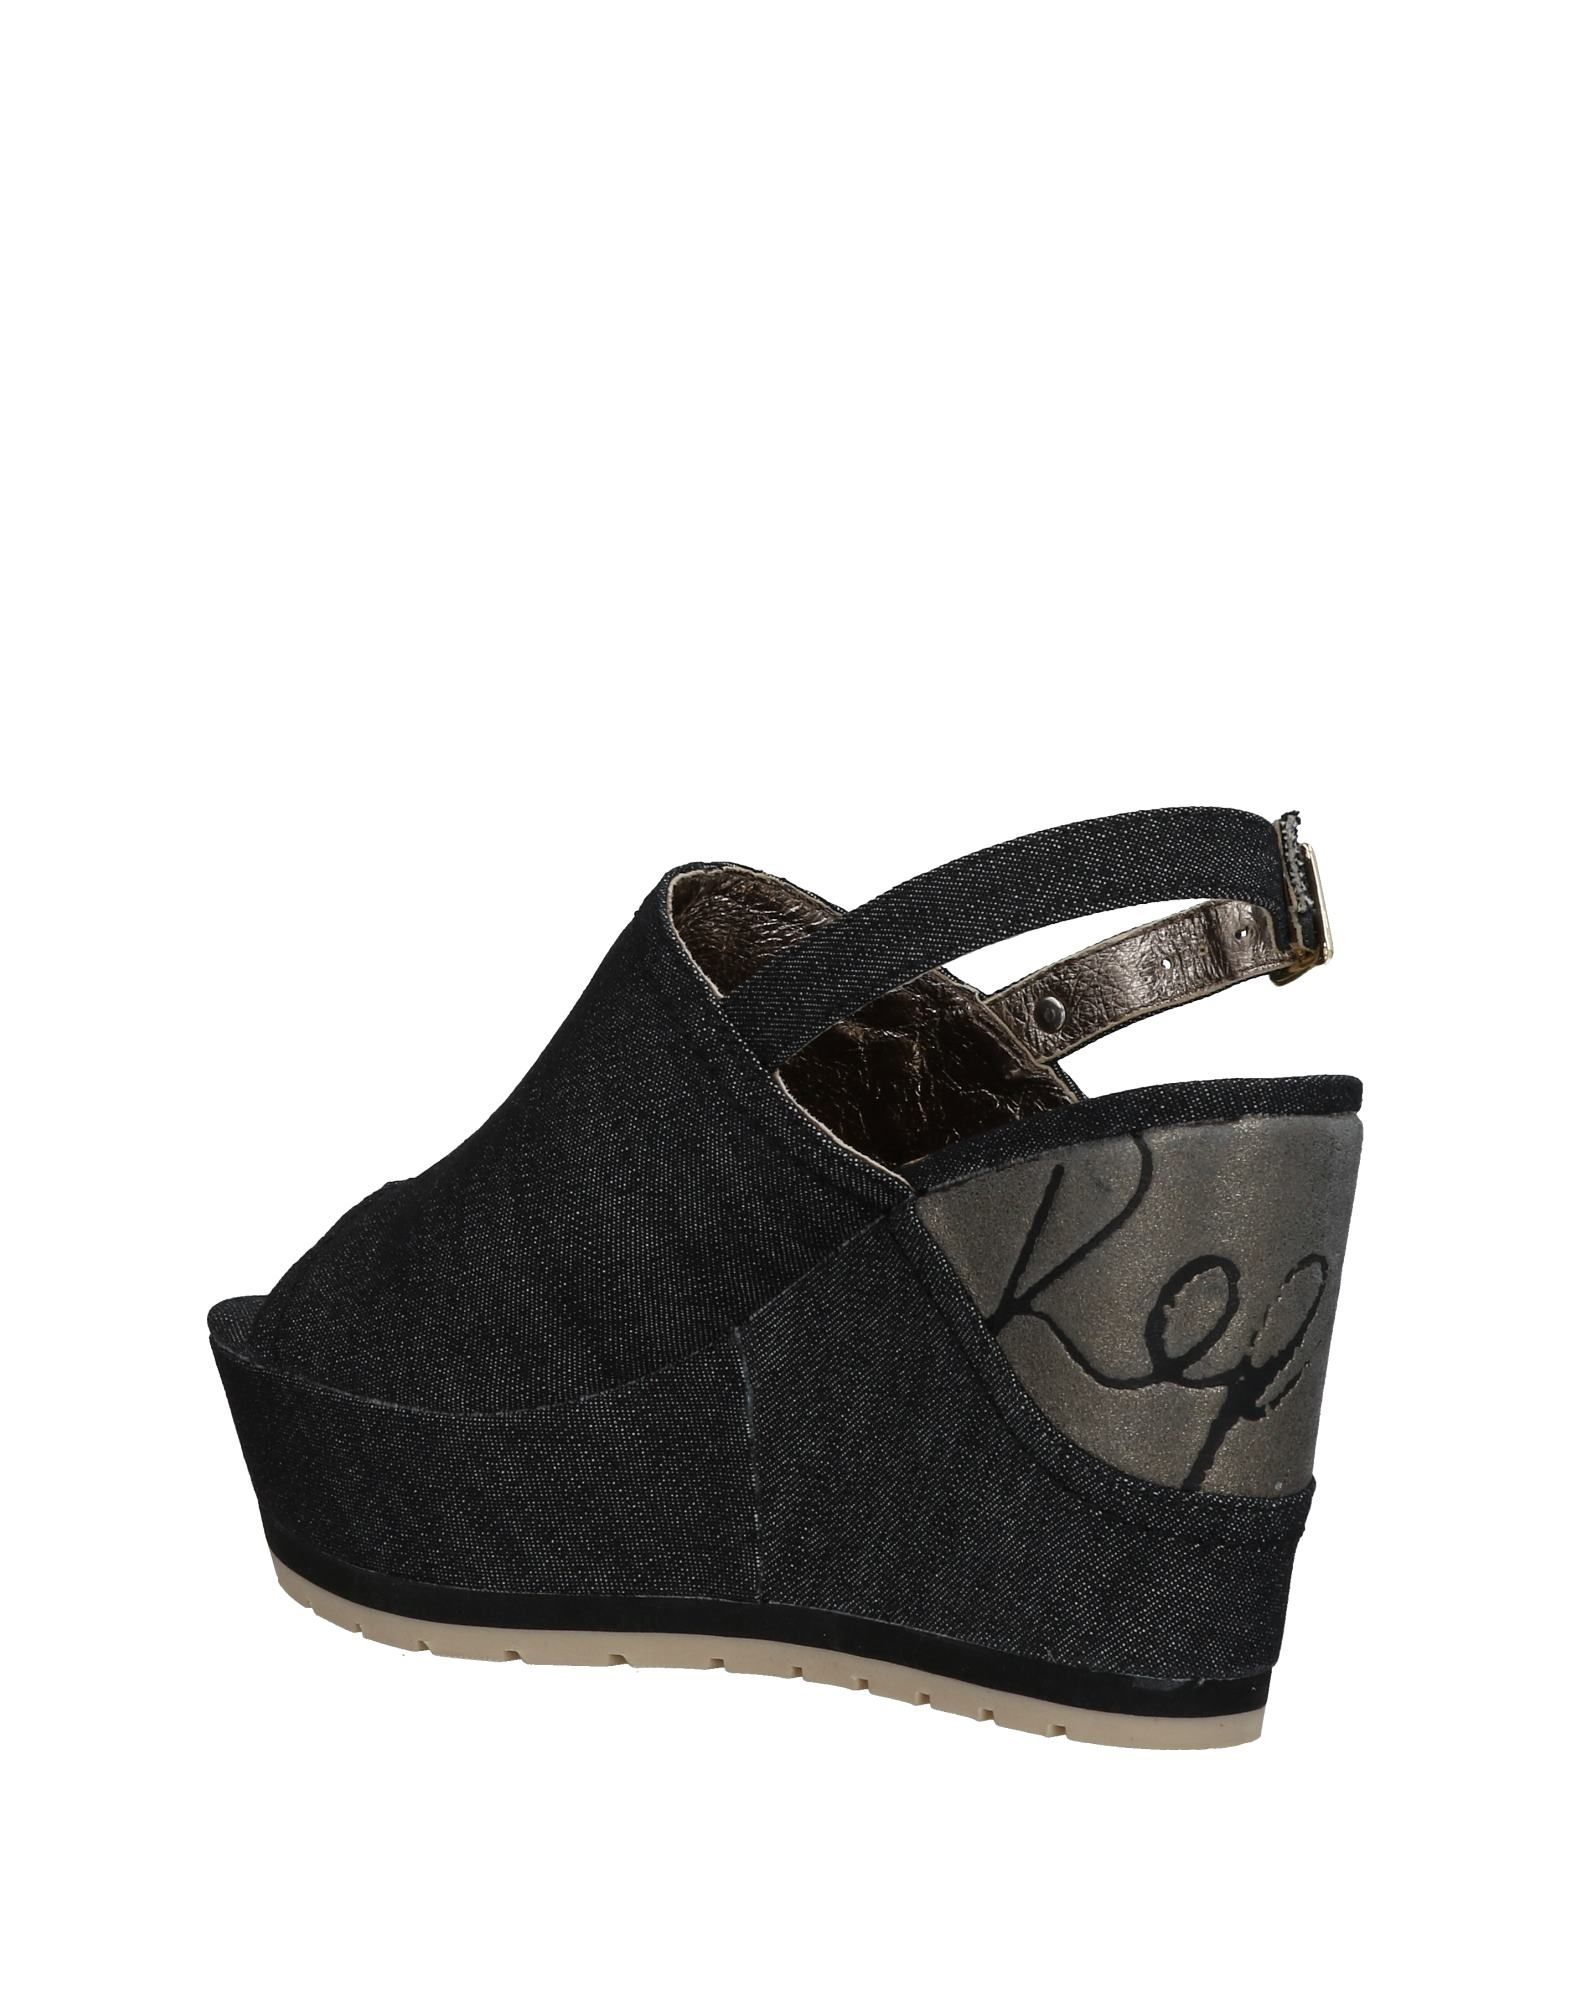 CHAUSSURES - BottinesEL CABALLO WVGQQESSi